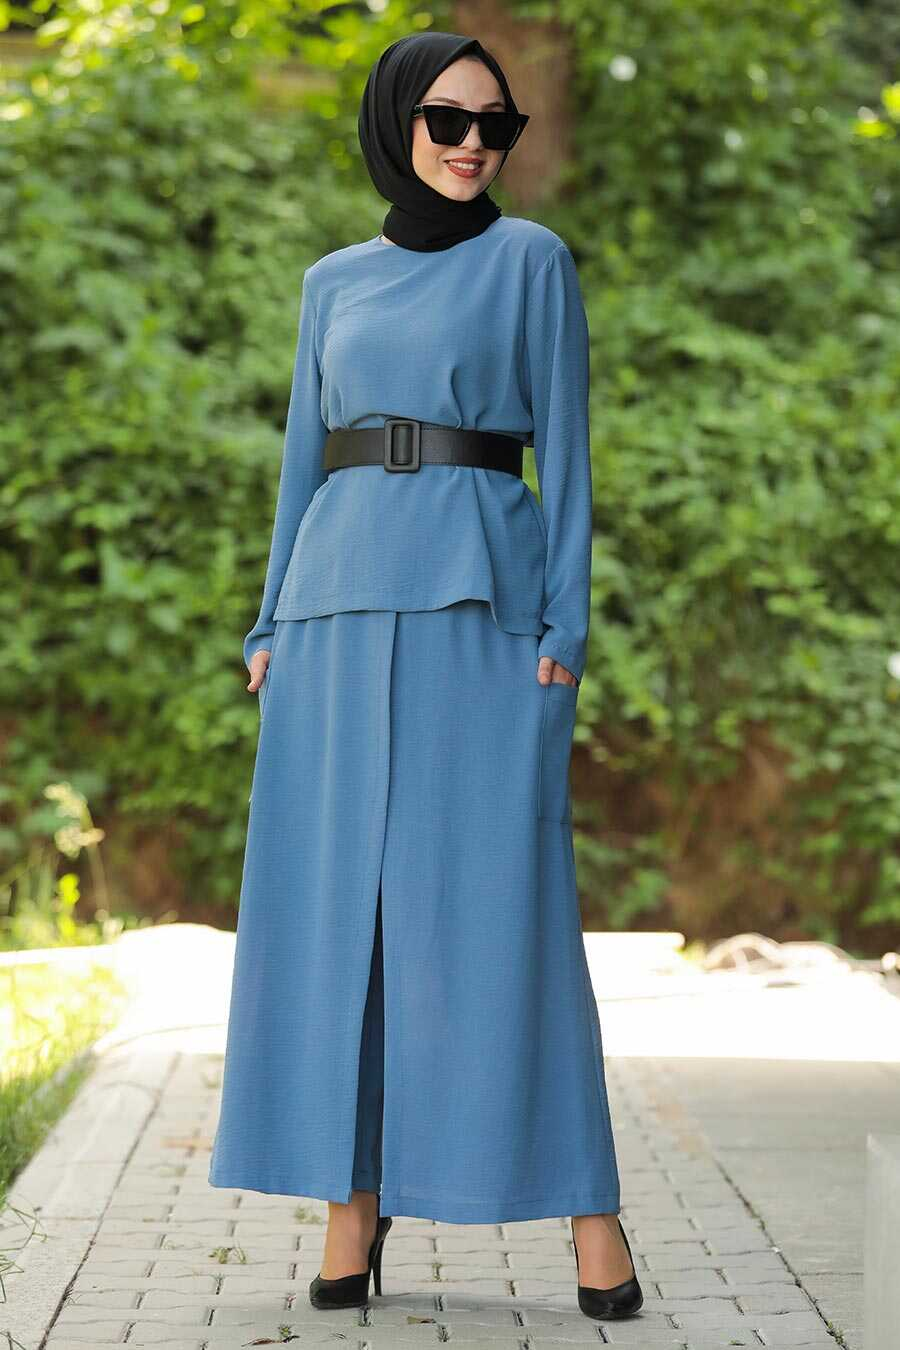 İndigo Blue Hijab Dual Suit Dress 12801IM